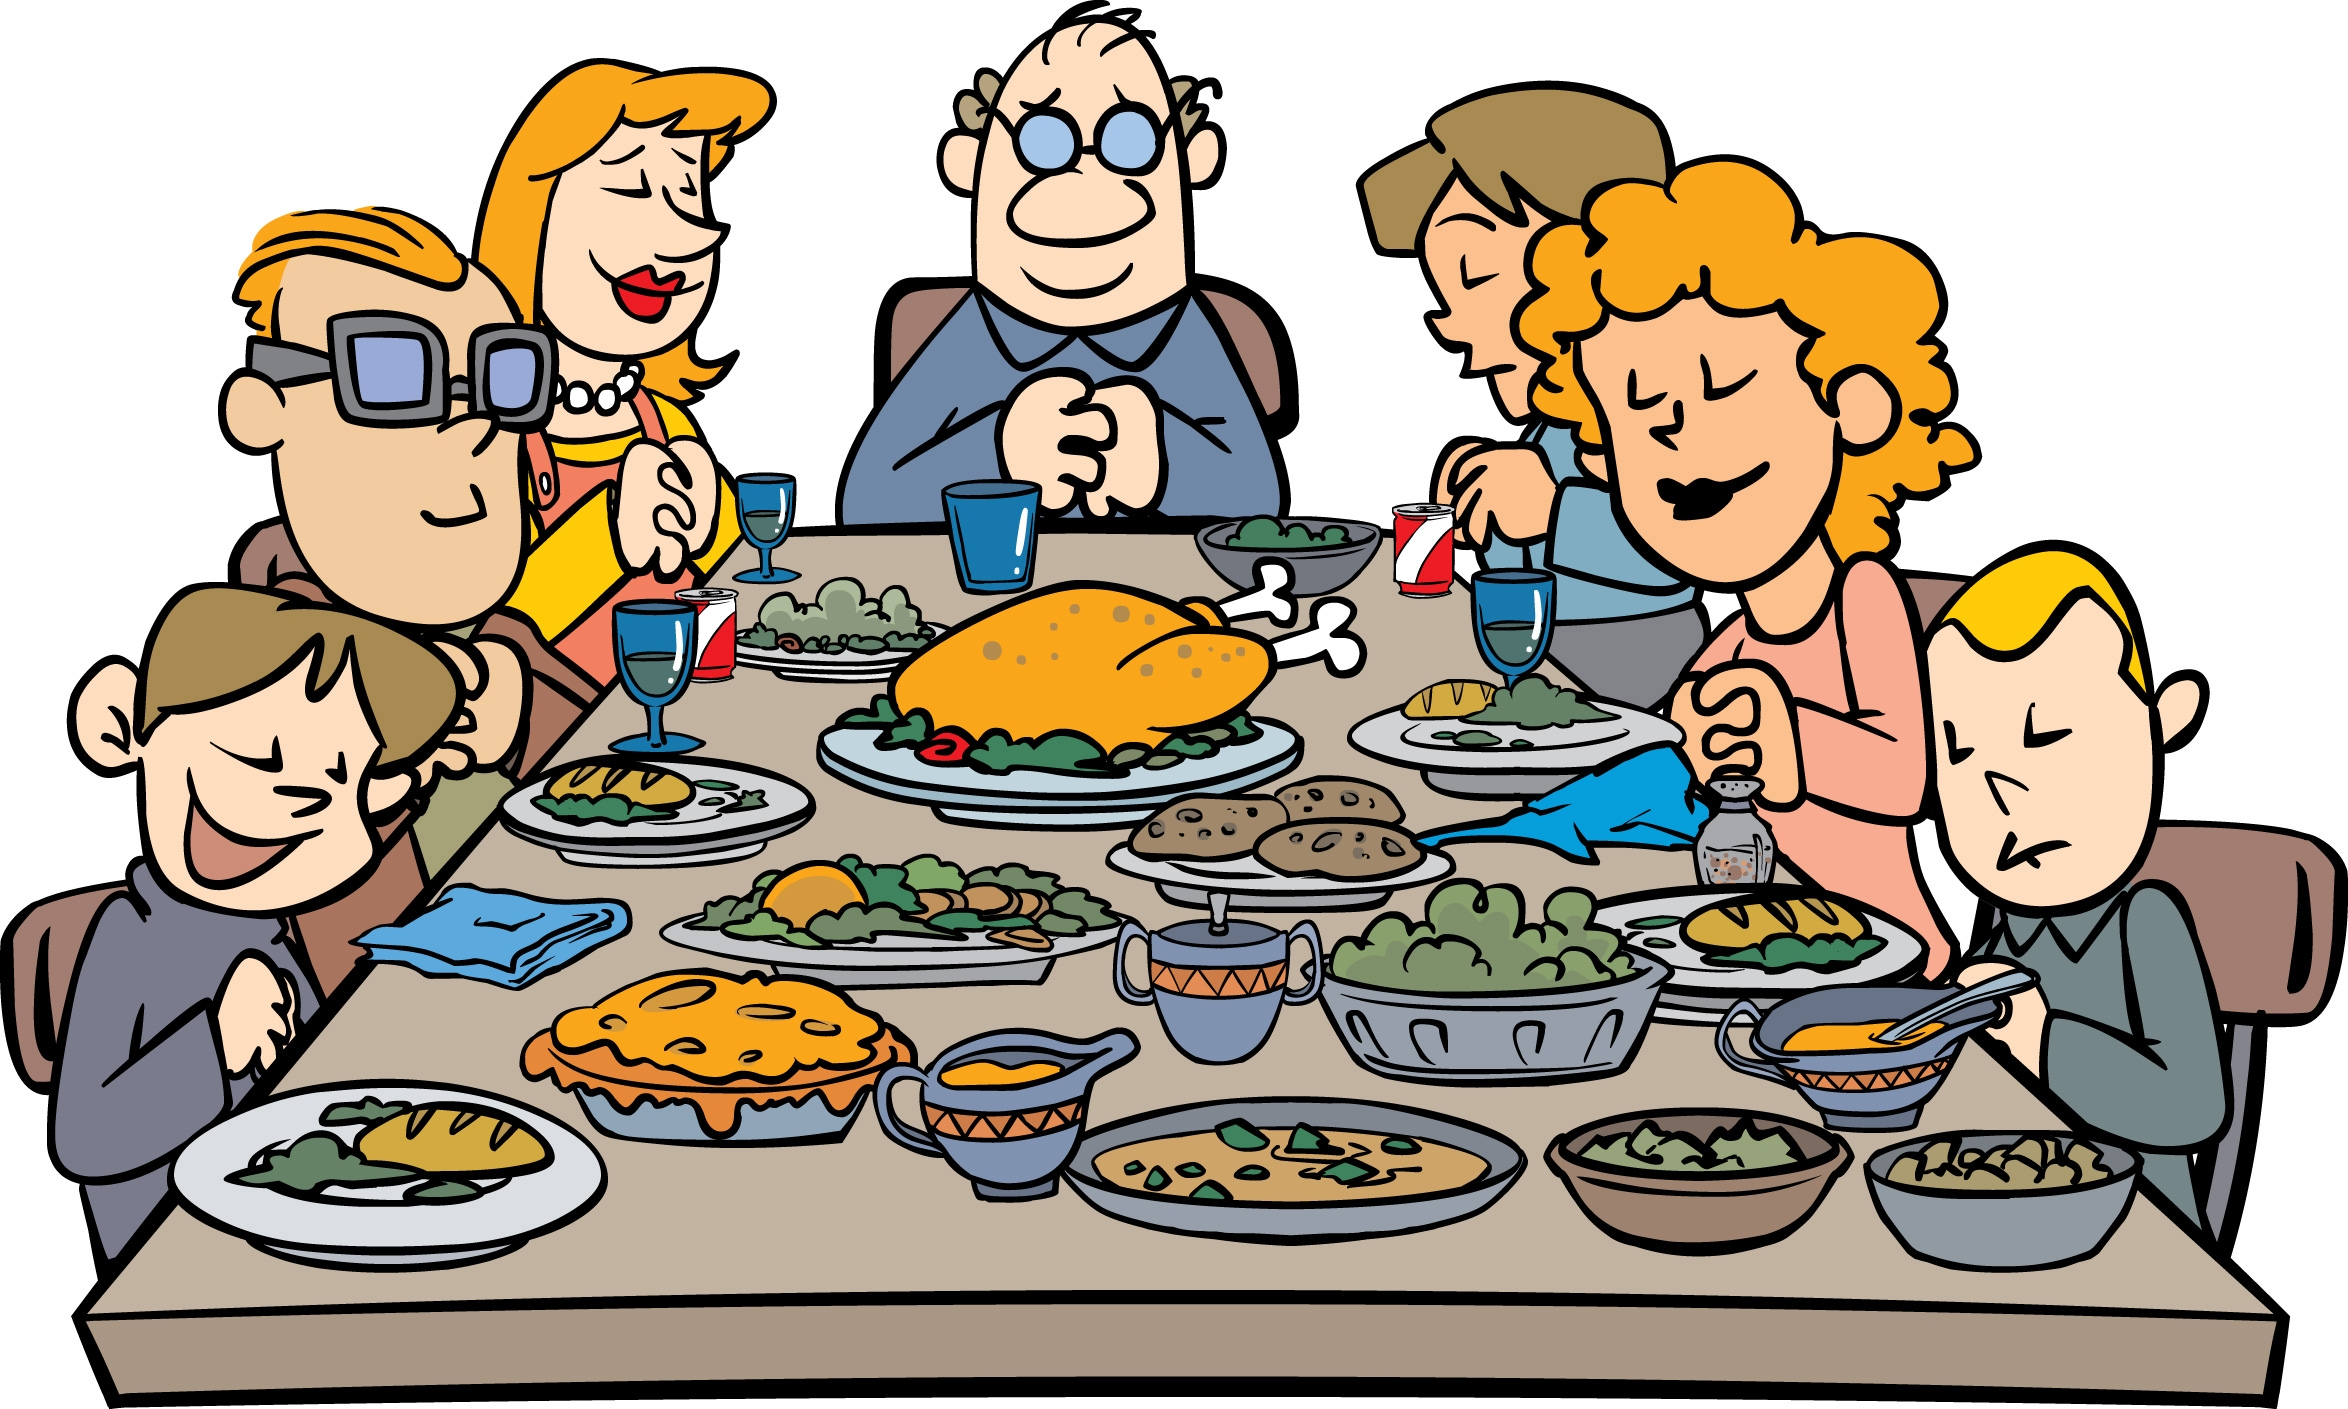 Dinner clipart tradition. Traditions free download best